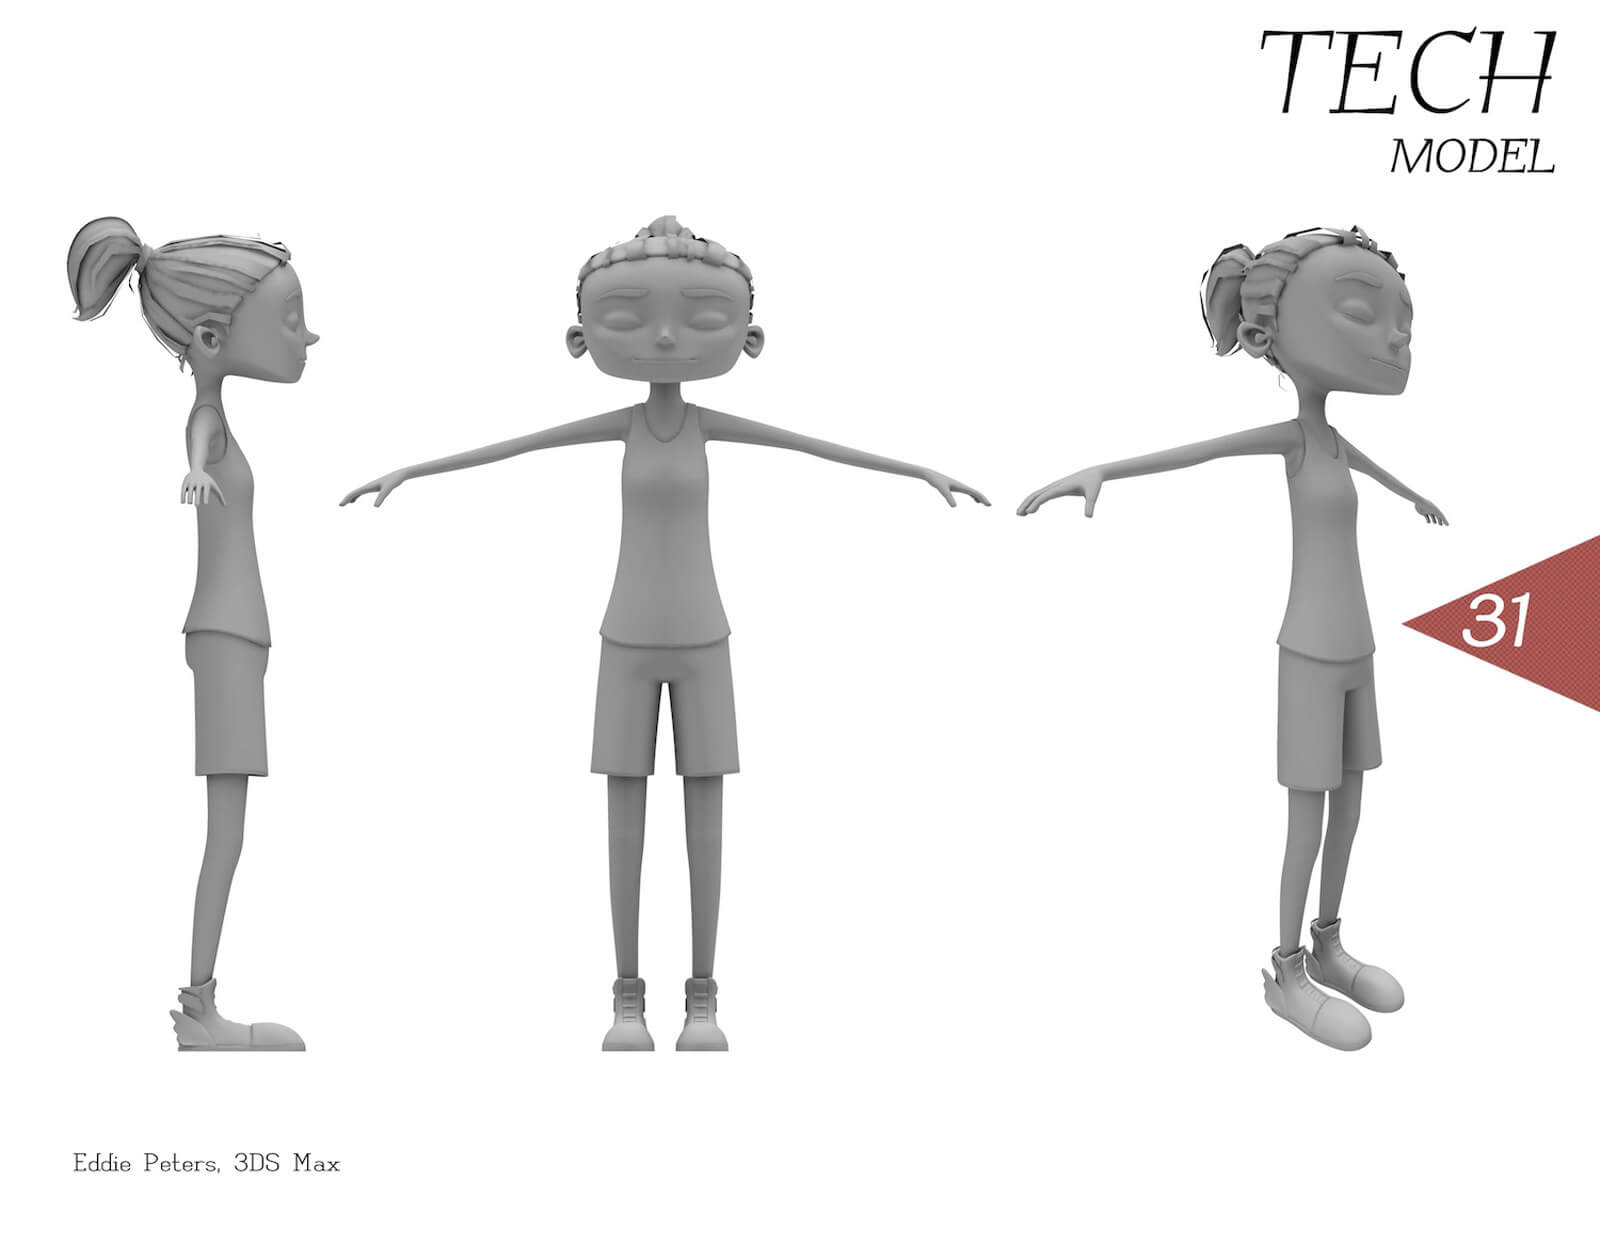 3D model of a girl with in a tank top and shorts from different angles. The color of the character is gray.